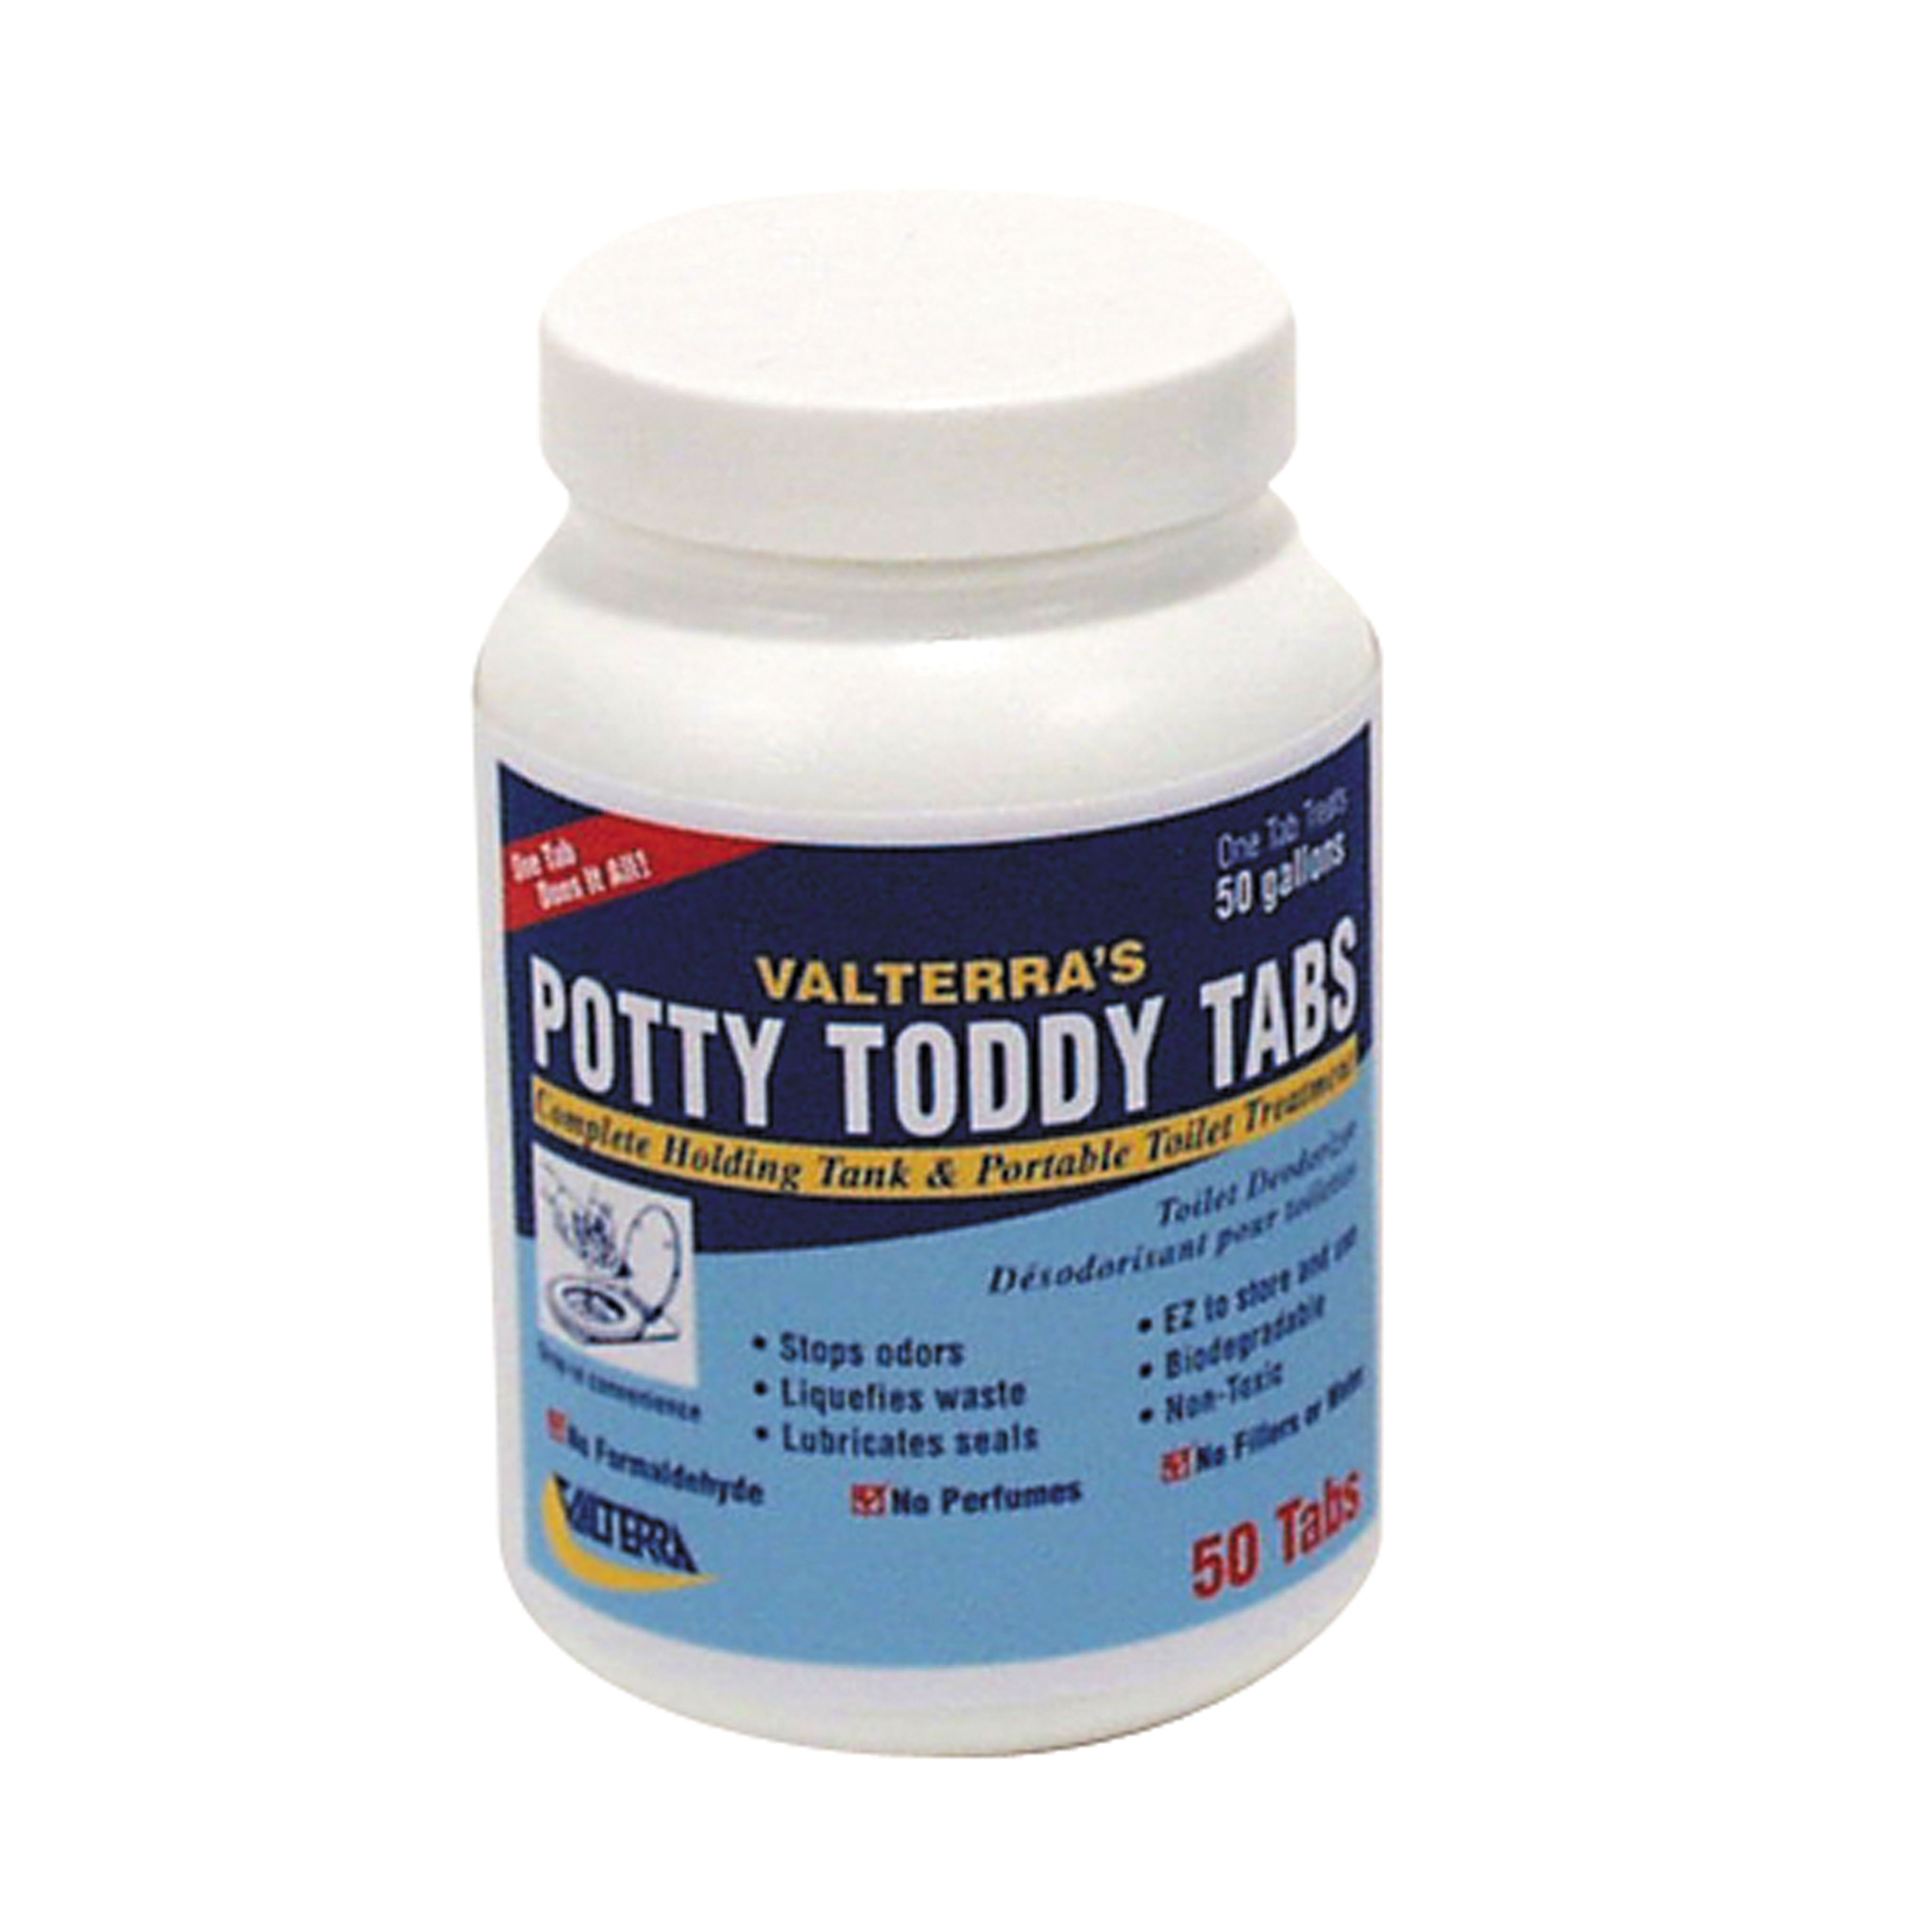 Valterra Q5004 Potty Toddy Tabs - 50/Bottle